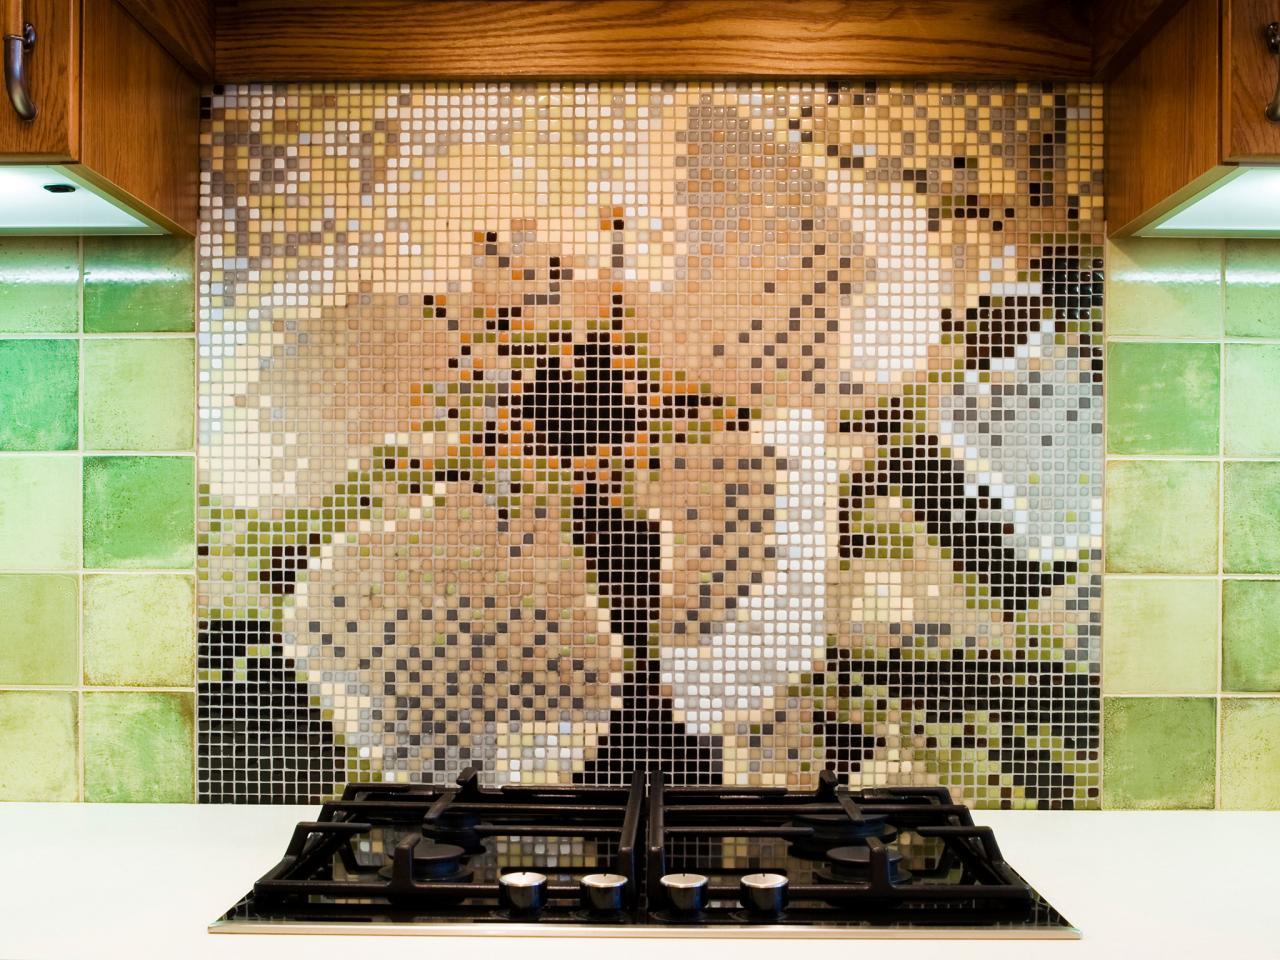 Mosaic Tile Backsplash Hgtv